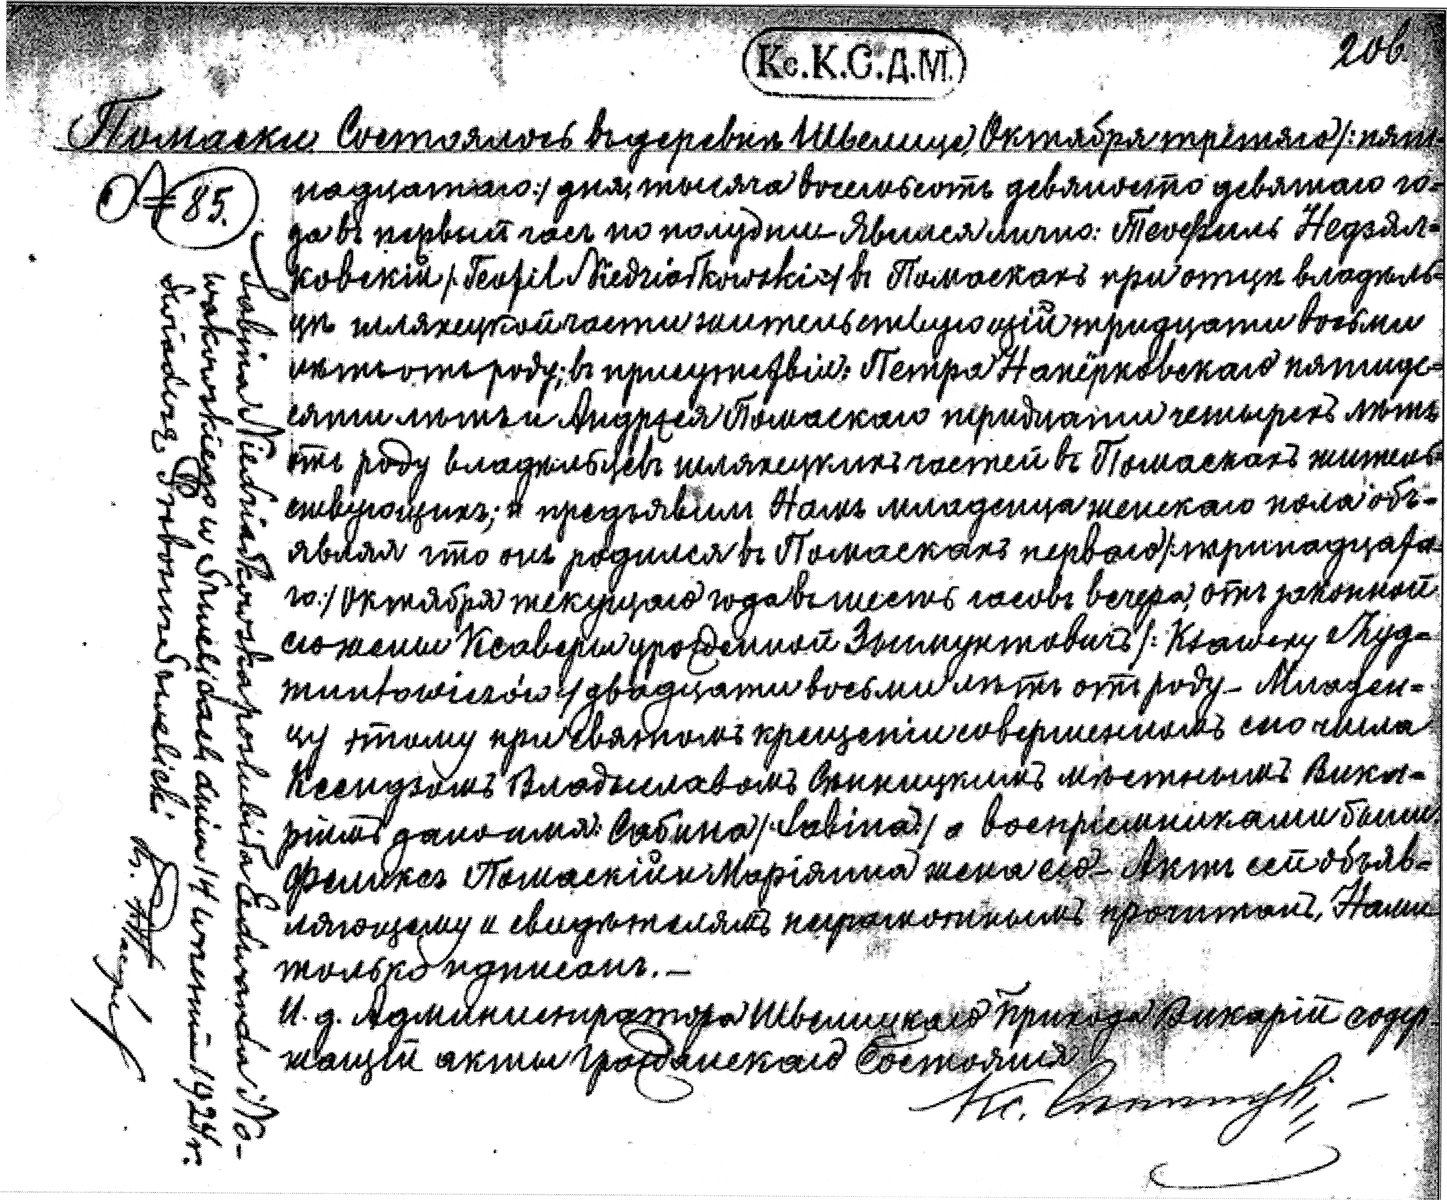 Birth and Baptismal Record for Sabina Niedziałkowska - 1899